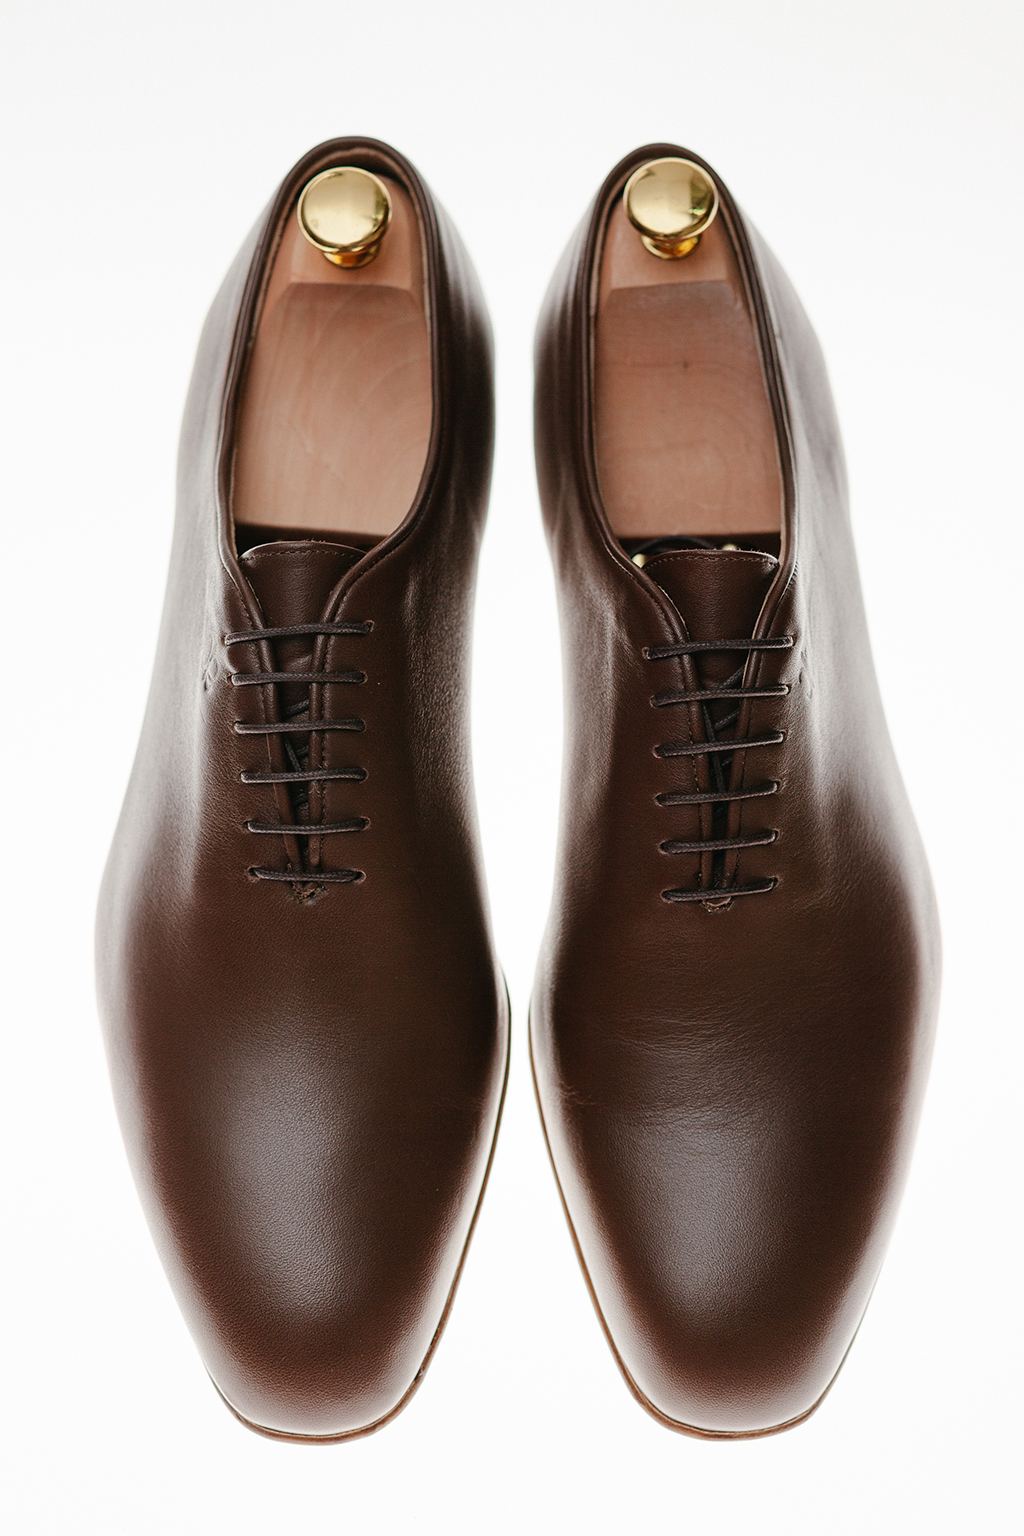 oxfords_up